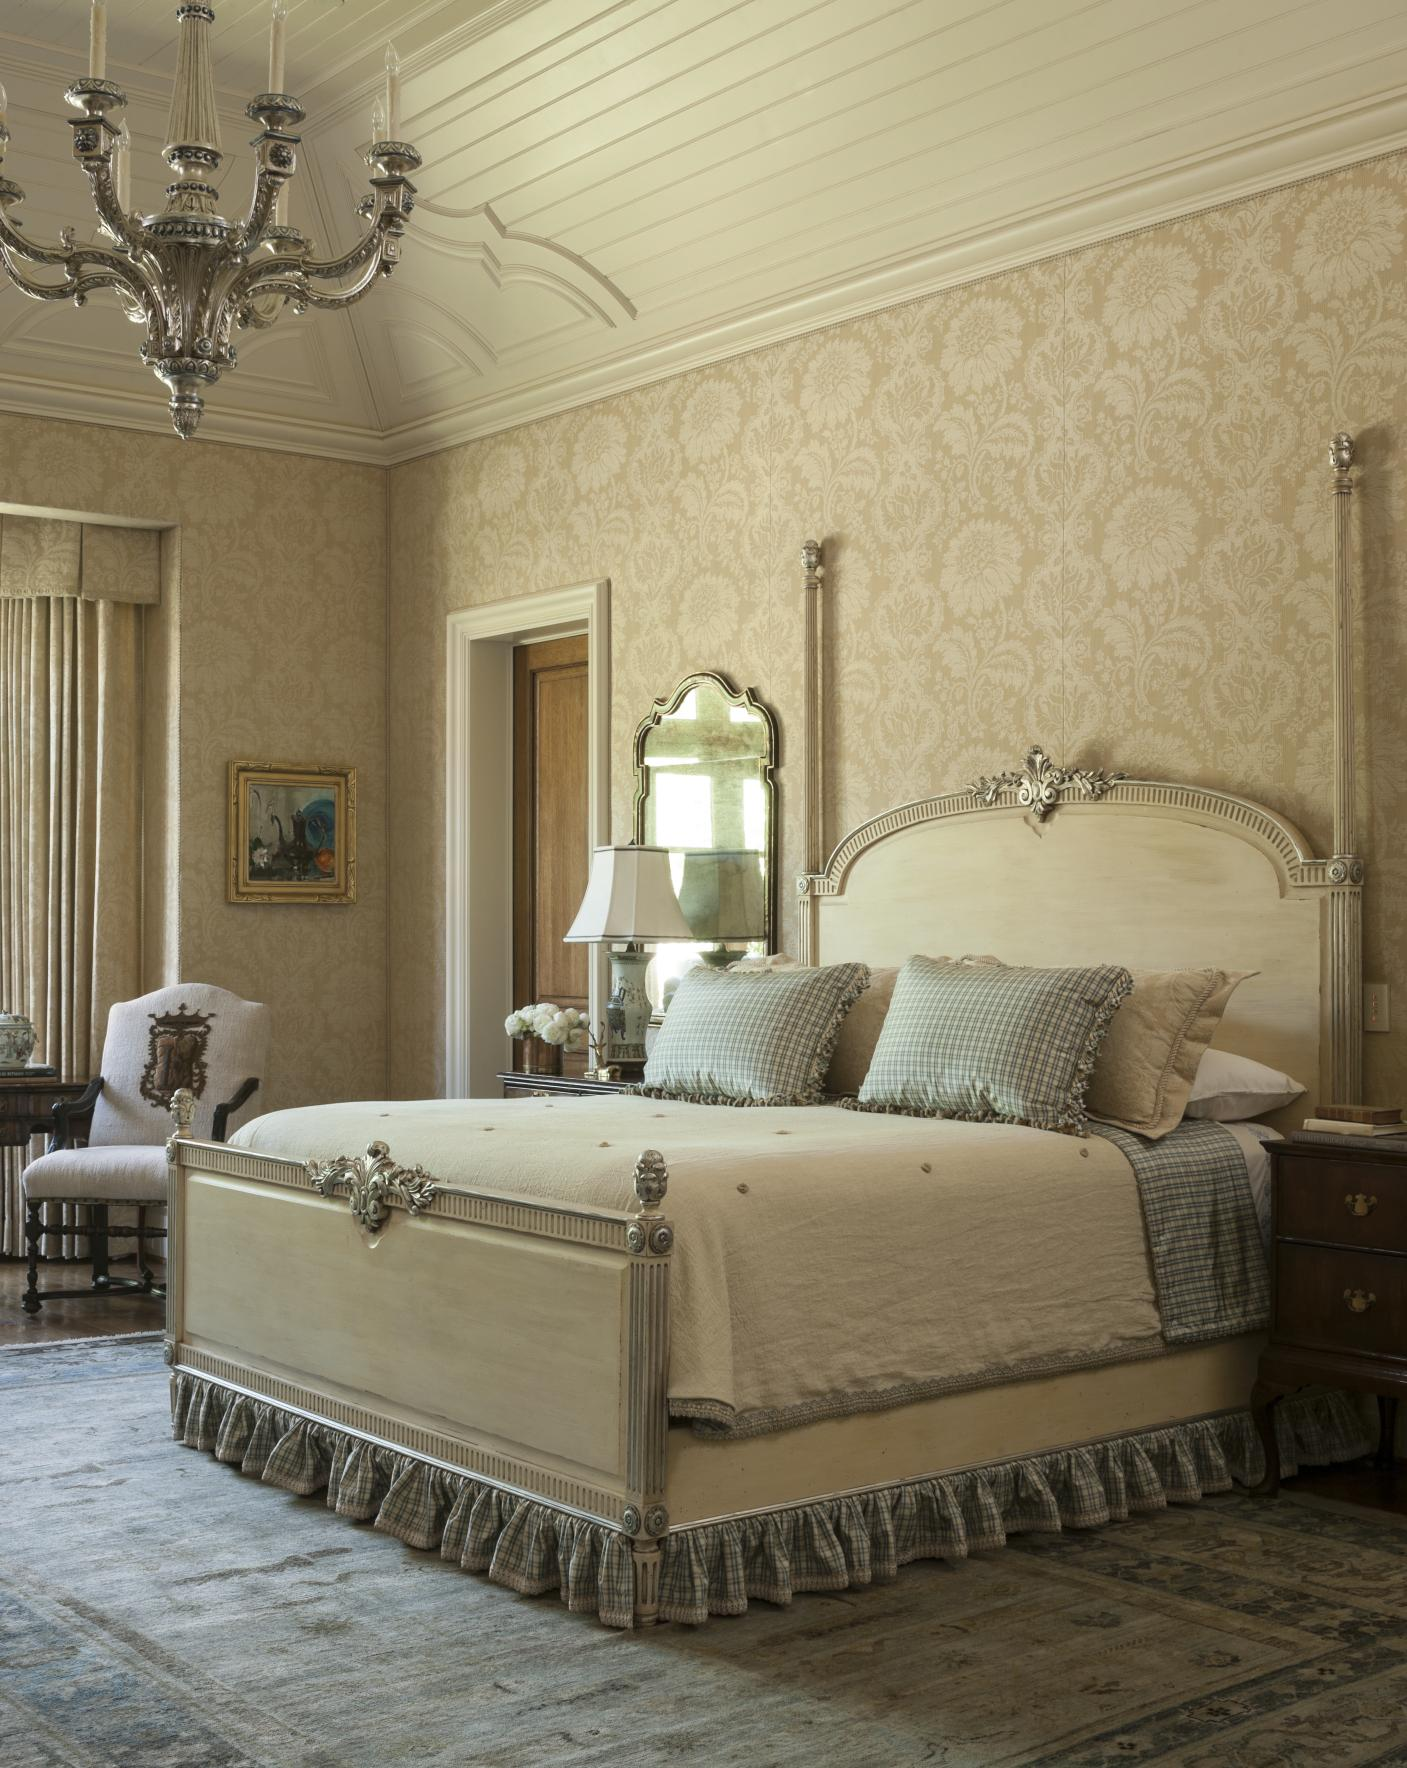 12 romantic bedrooms traditional home 13575 | 102090424